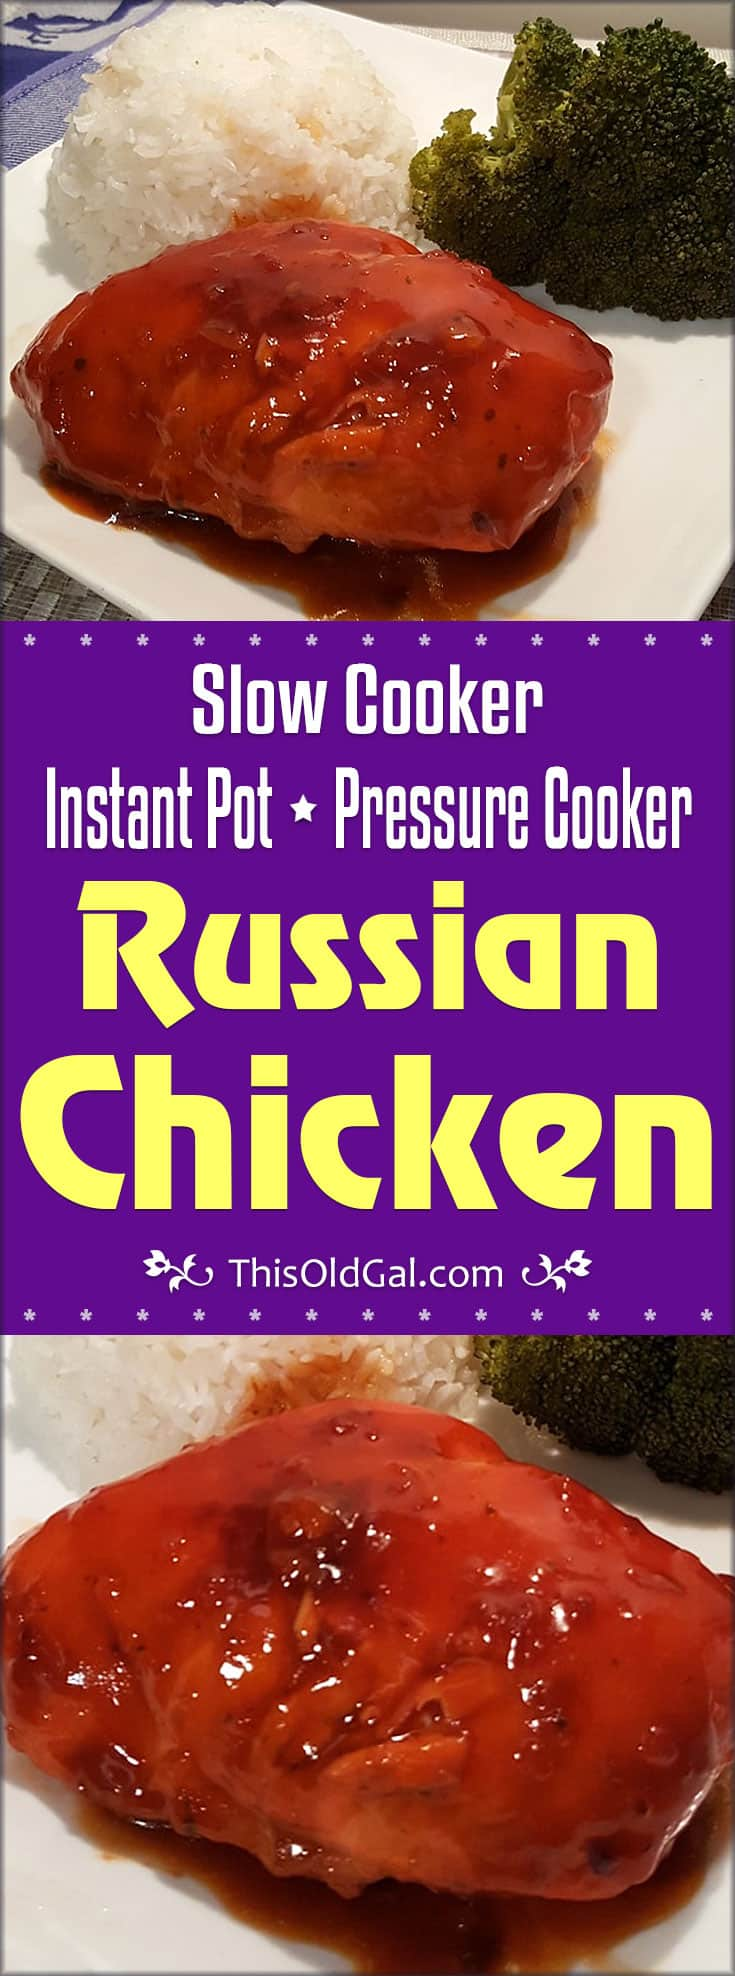 Slow Cooker / Pressure Cooker Russian Chicken (Instant Pot)